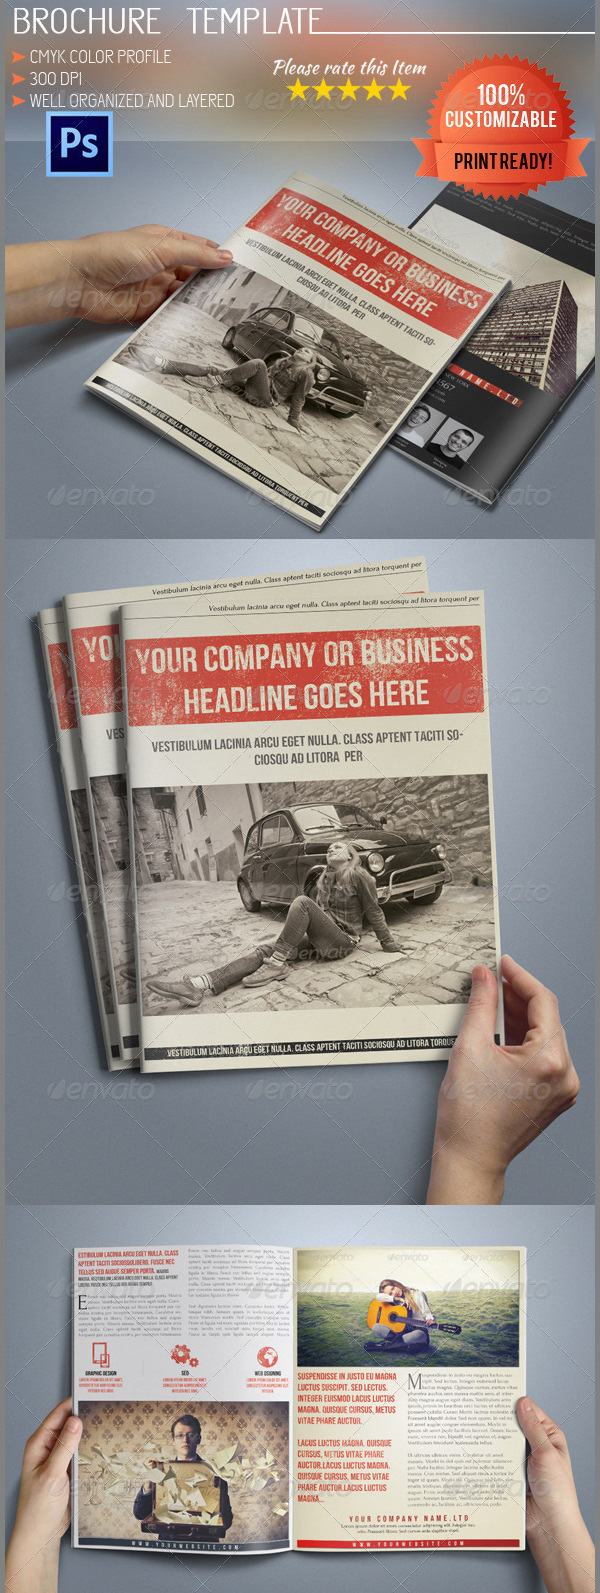 A5 Retro Bi-Fold Business Brochure